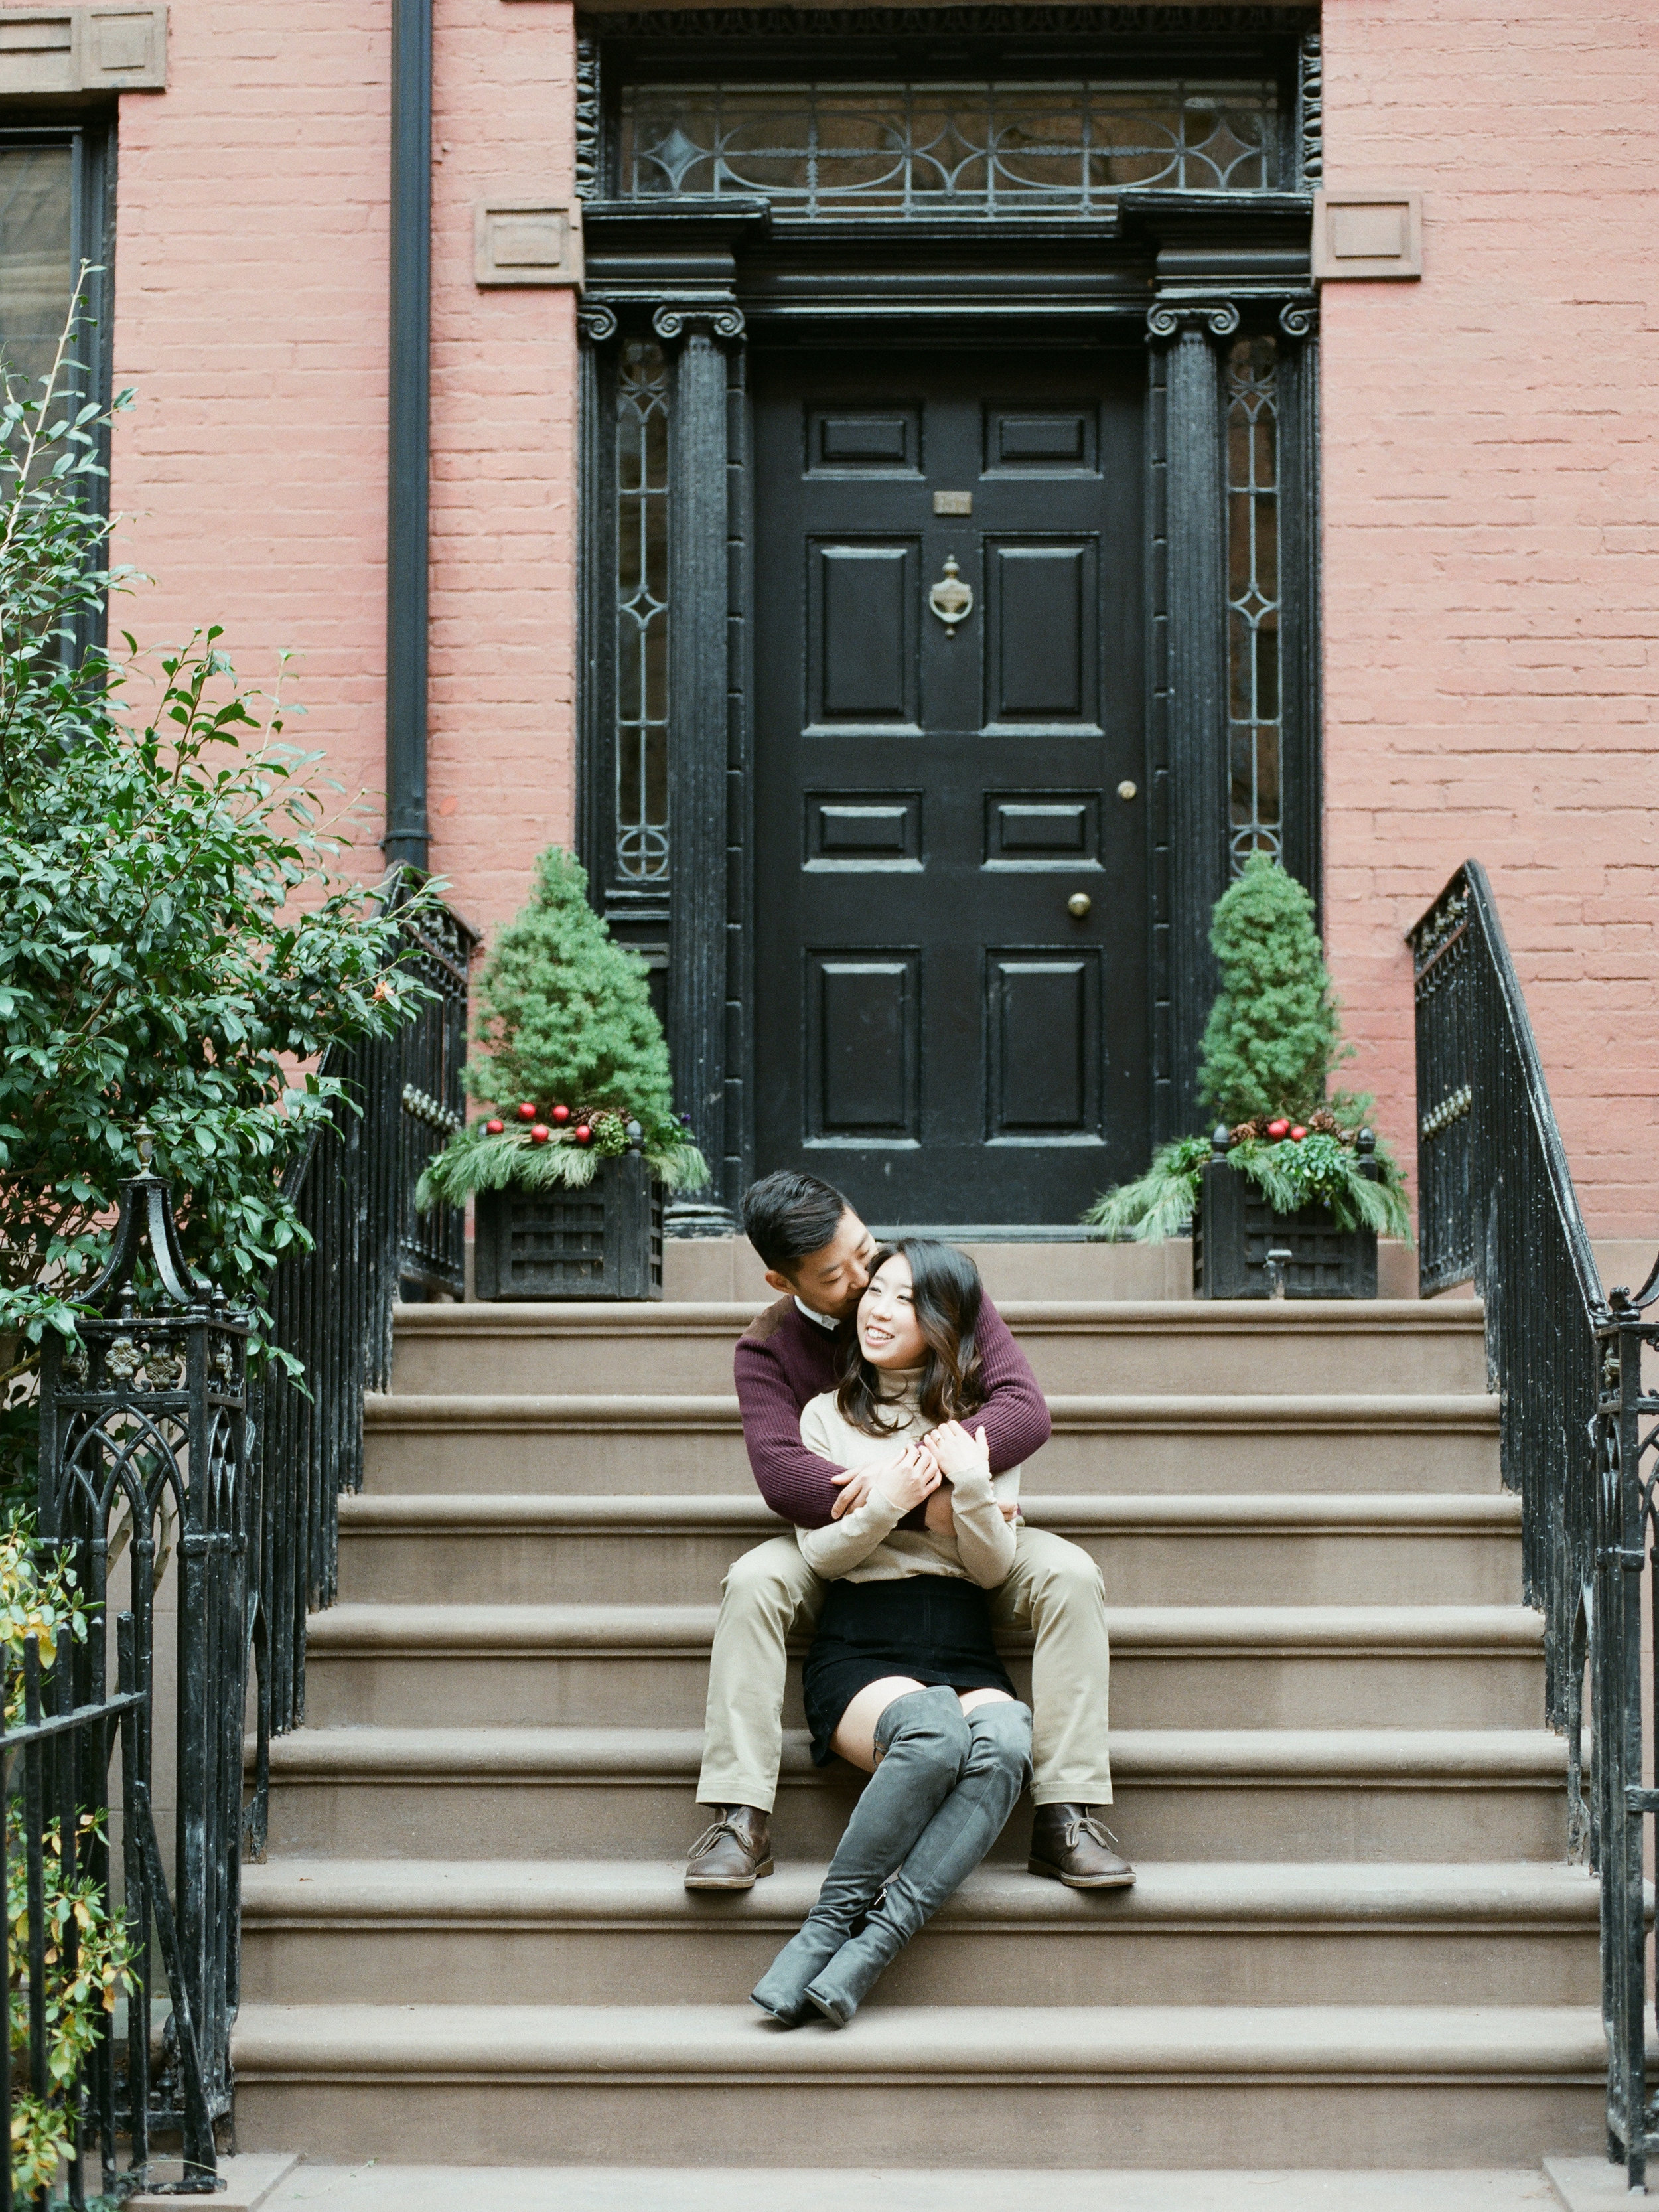 brooklyn-dumbo-new-york-engagement-photos-pictures-46.jpg